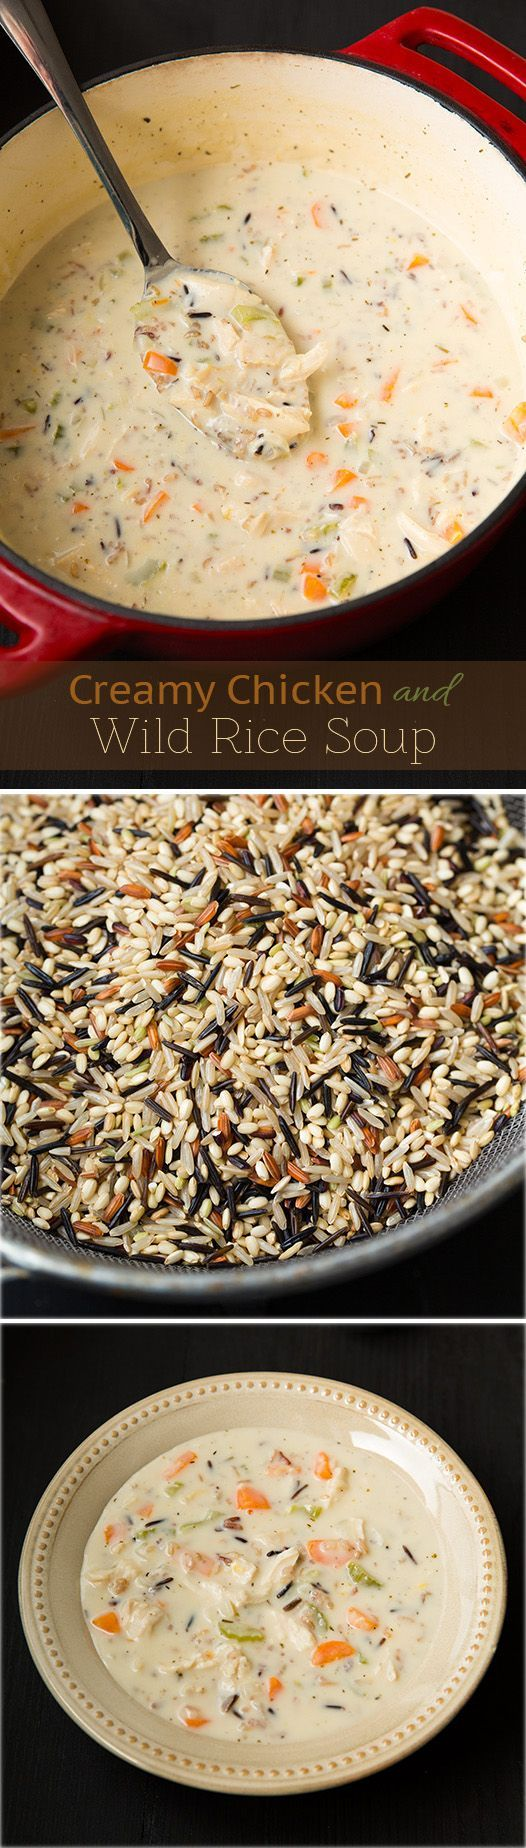 Creamy Chicken and Wild Rice Soup – Cooking Classy